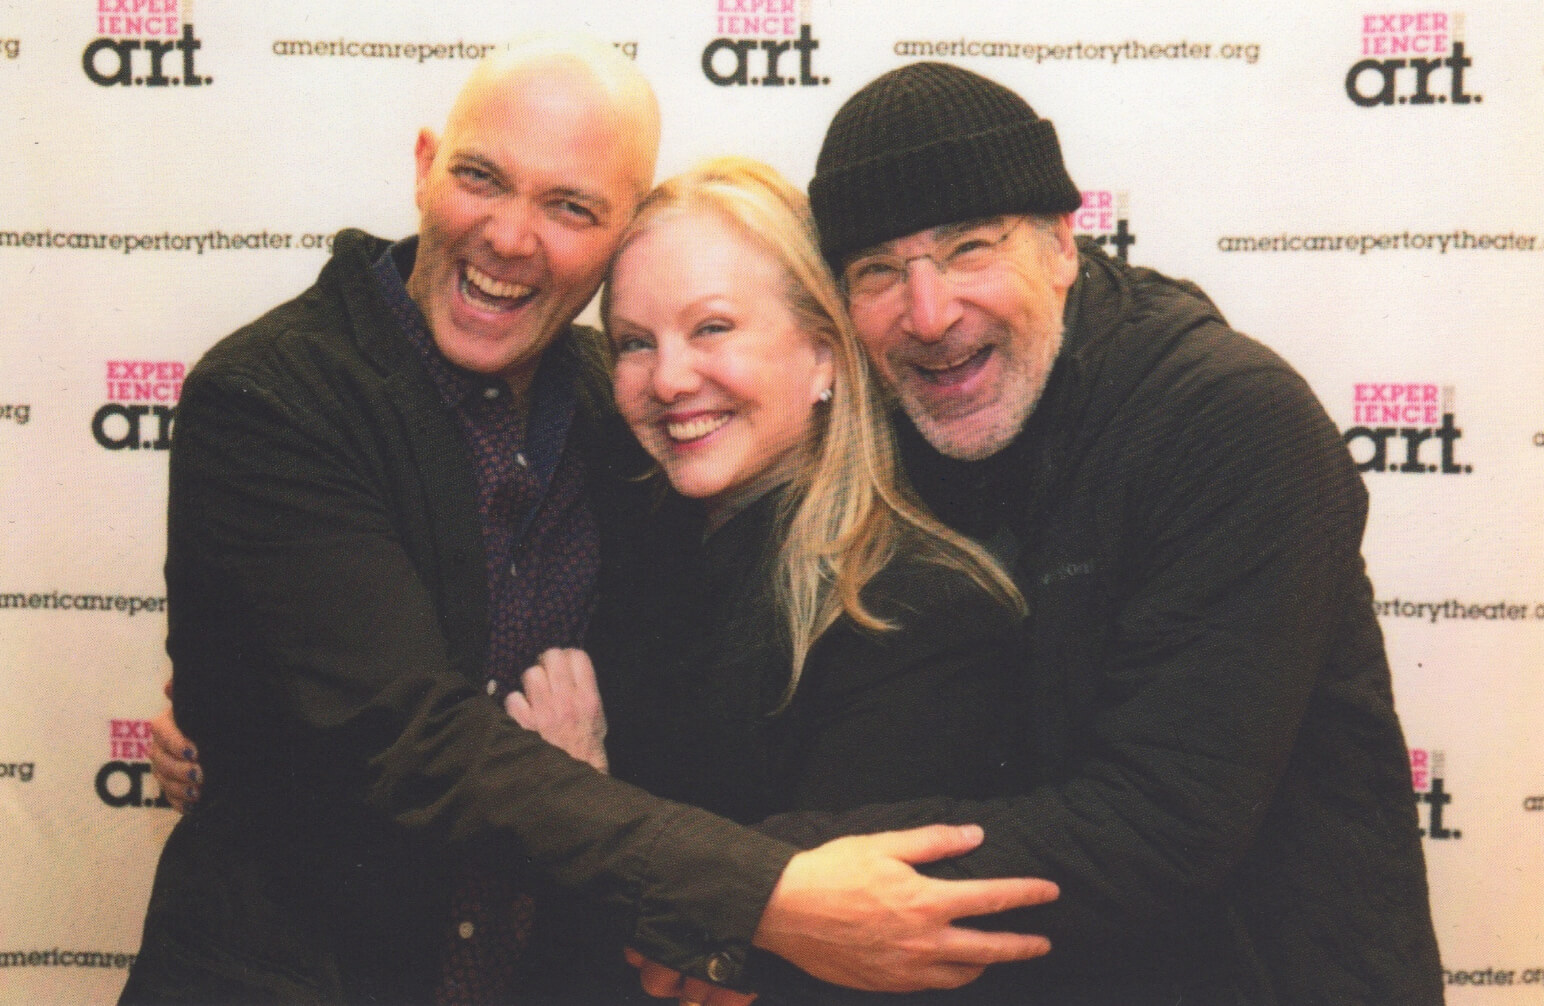 Taylor Mac, Susan Stroman, and Mandy Patinkin (all in black and hugging Stro in the middle) at the opening night of The Last TwoPeople on Earth:An Apocalyptic Vaudeville at A.R.T.